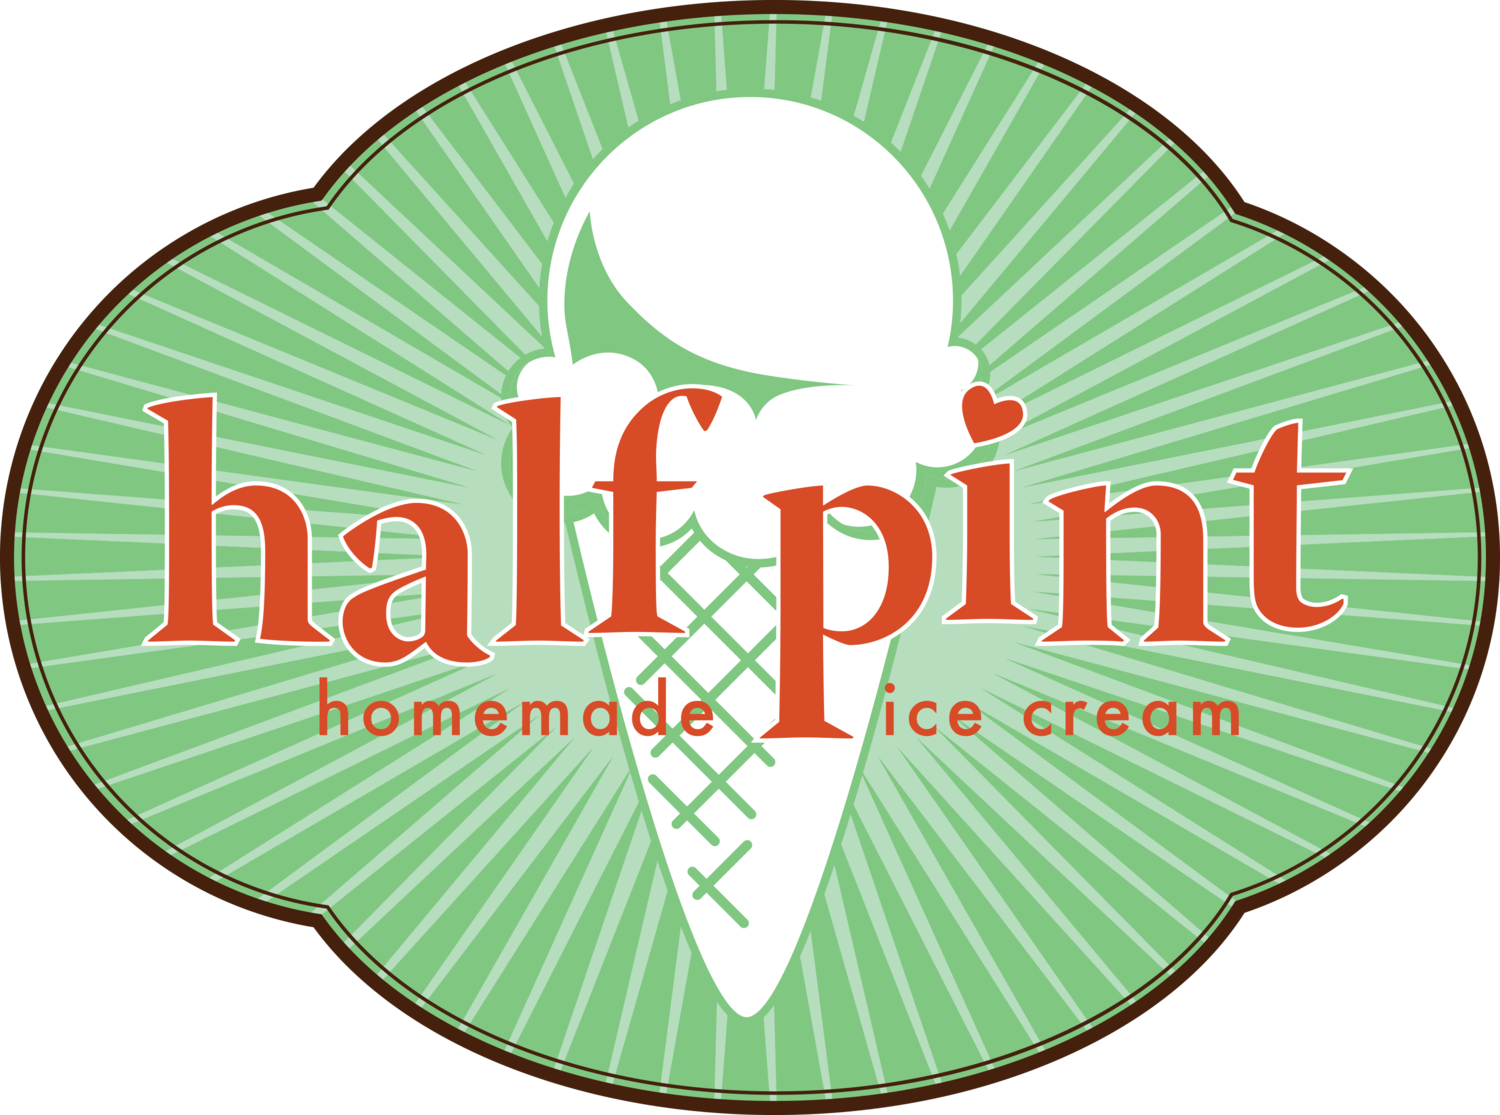 Half Pint Homemade Ice Cream